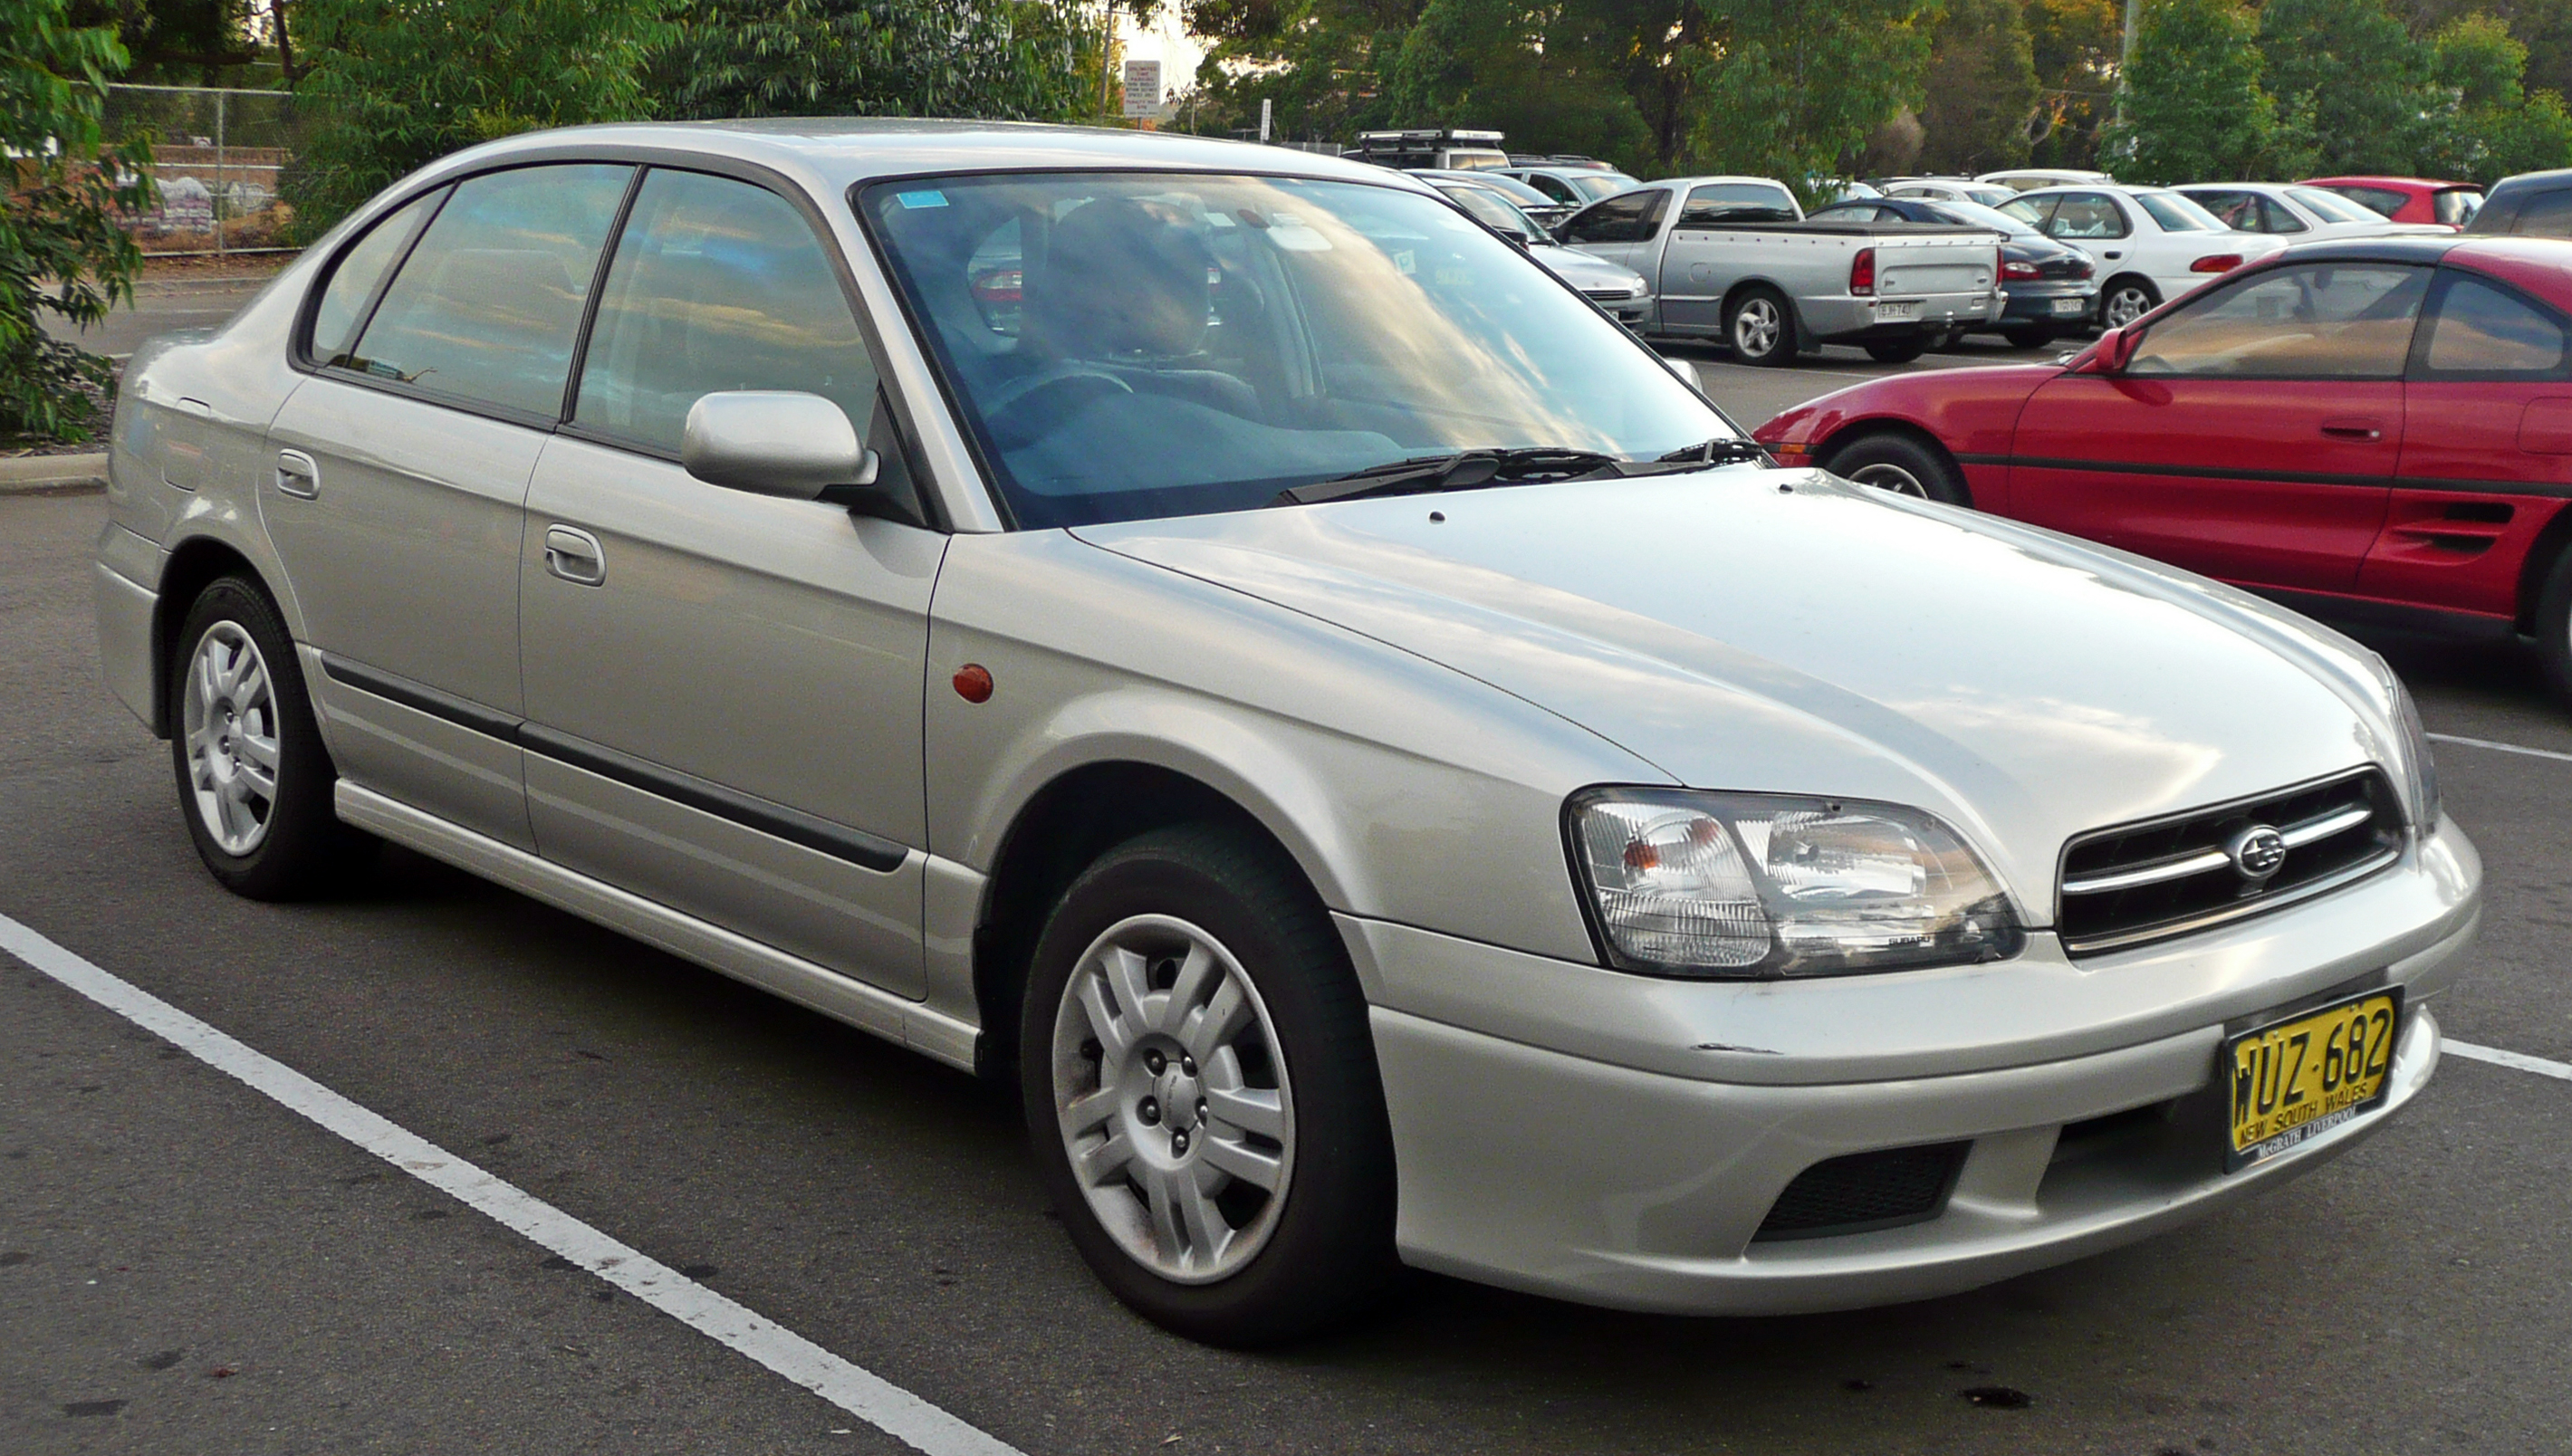 2000 Subaru Liberty (BE5 MY01) GX sedan (2010-05-04)